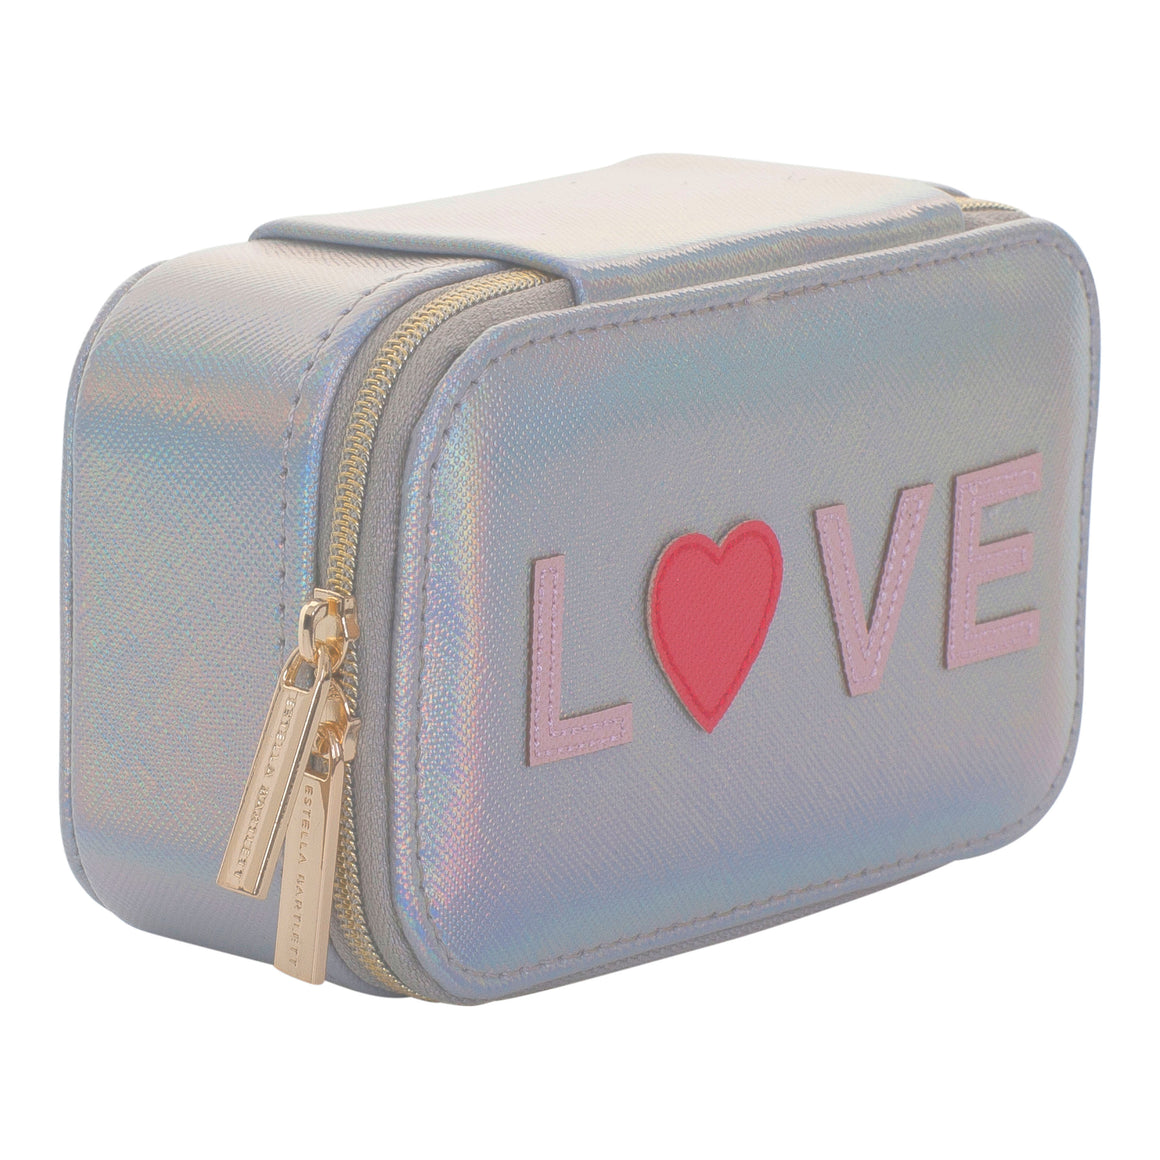 Iridescent Love Jewellery Box for Women in Silver